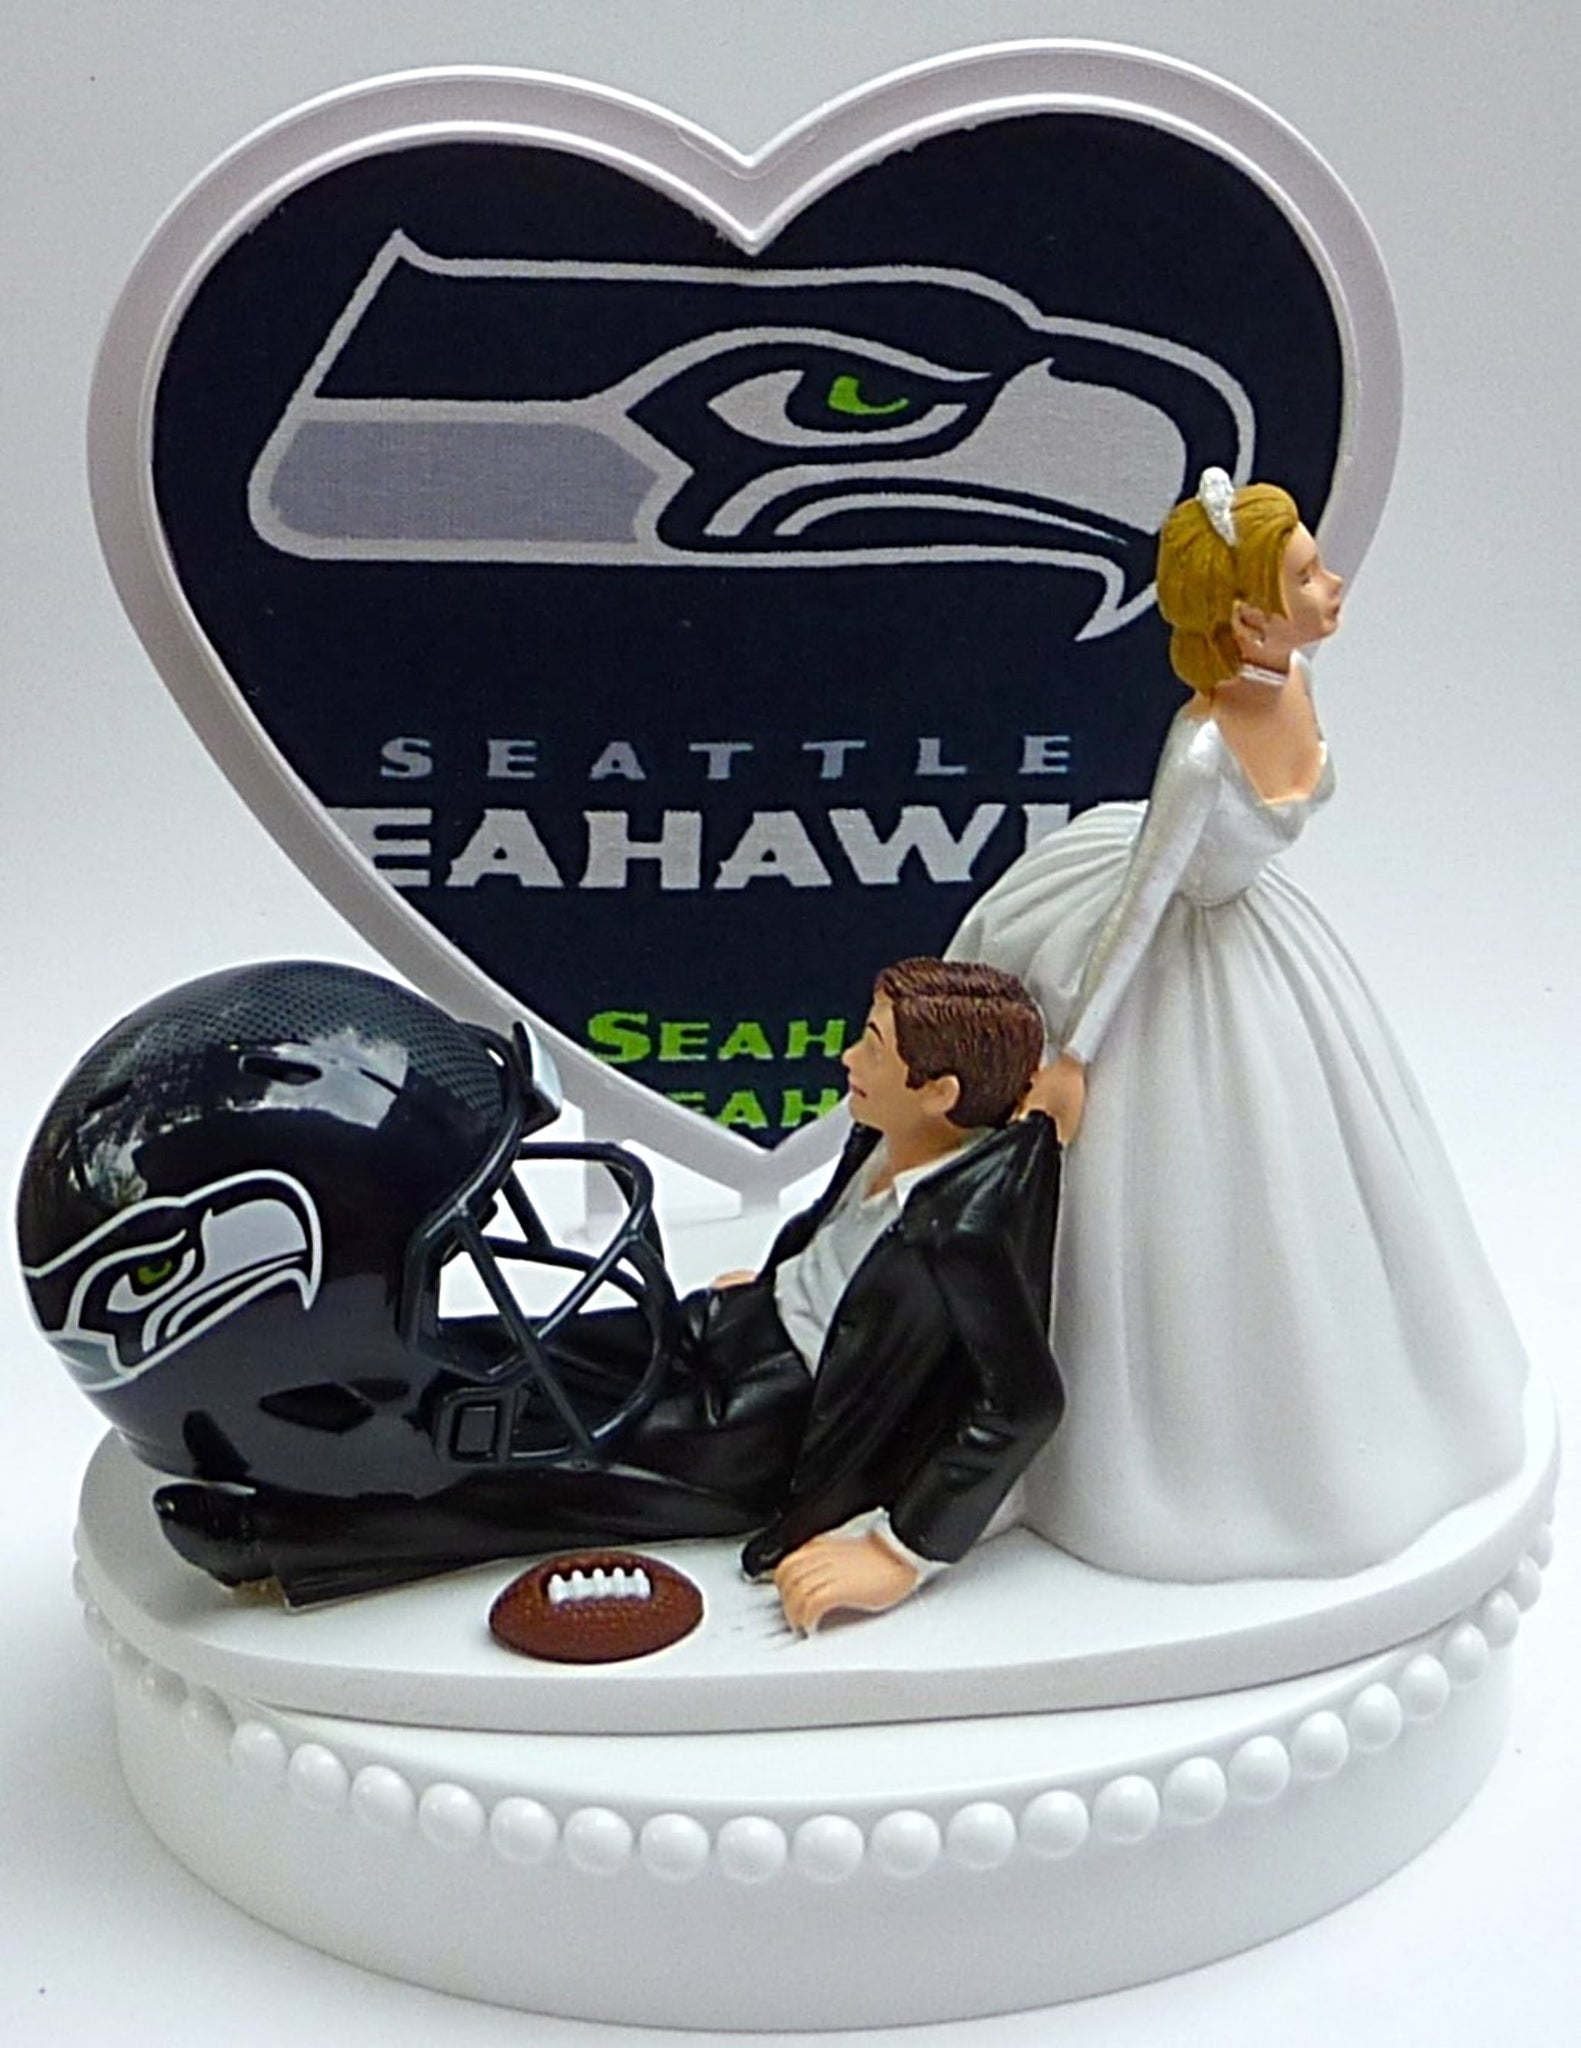 Wedding Cake Topper - Seattle Seahawks Football Themed